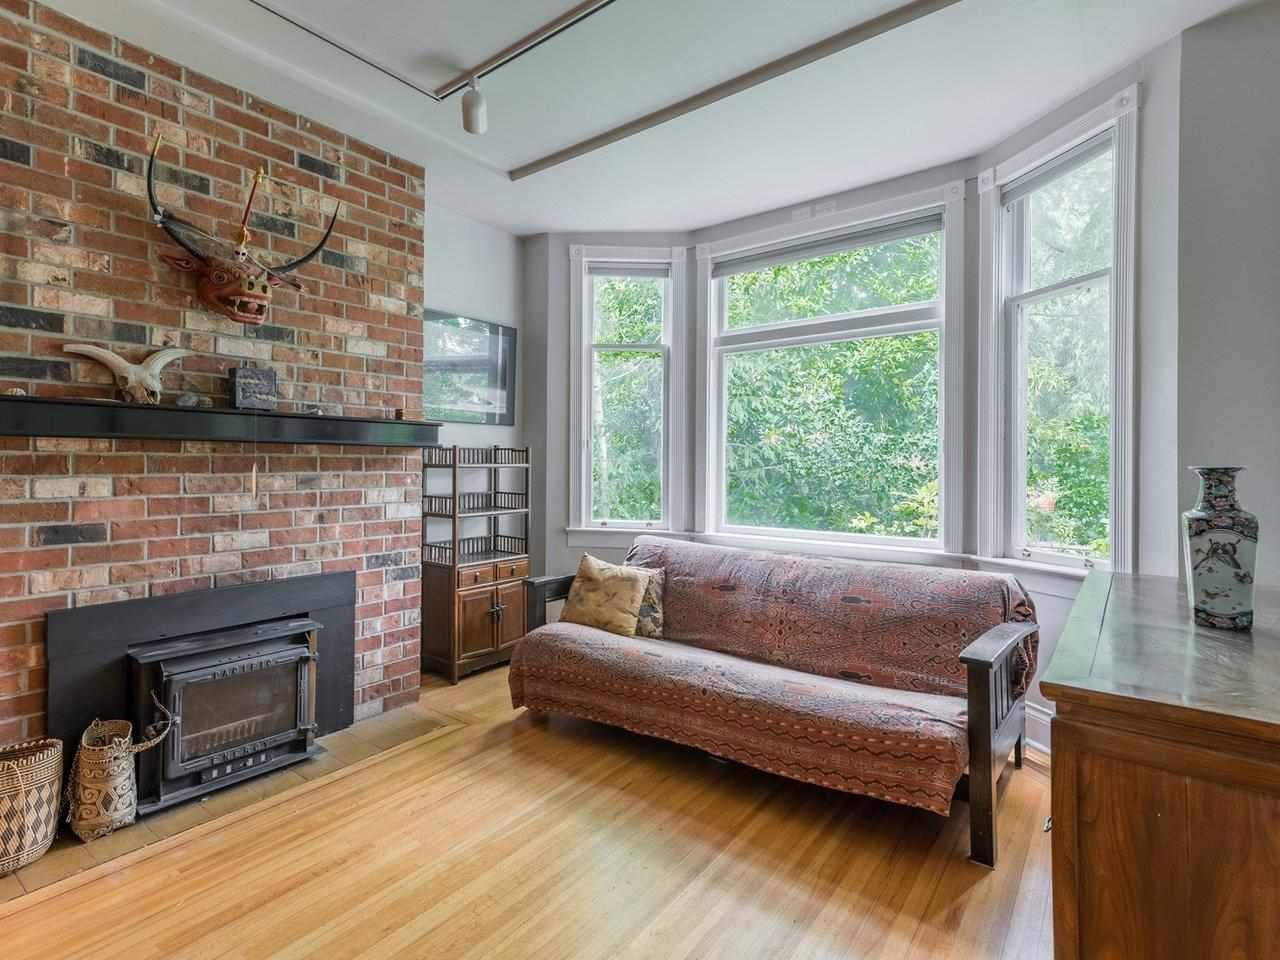 Photo 19: Photos: 2556 W 2ND Avenue in Vancouver: Kitsilano House for sale (Vancouver West)  : MLS®# R2593228